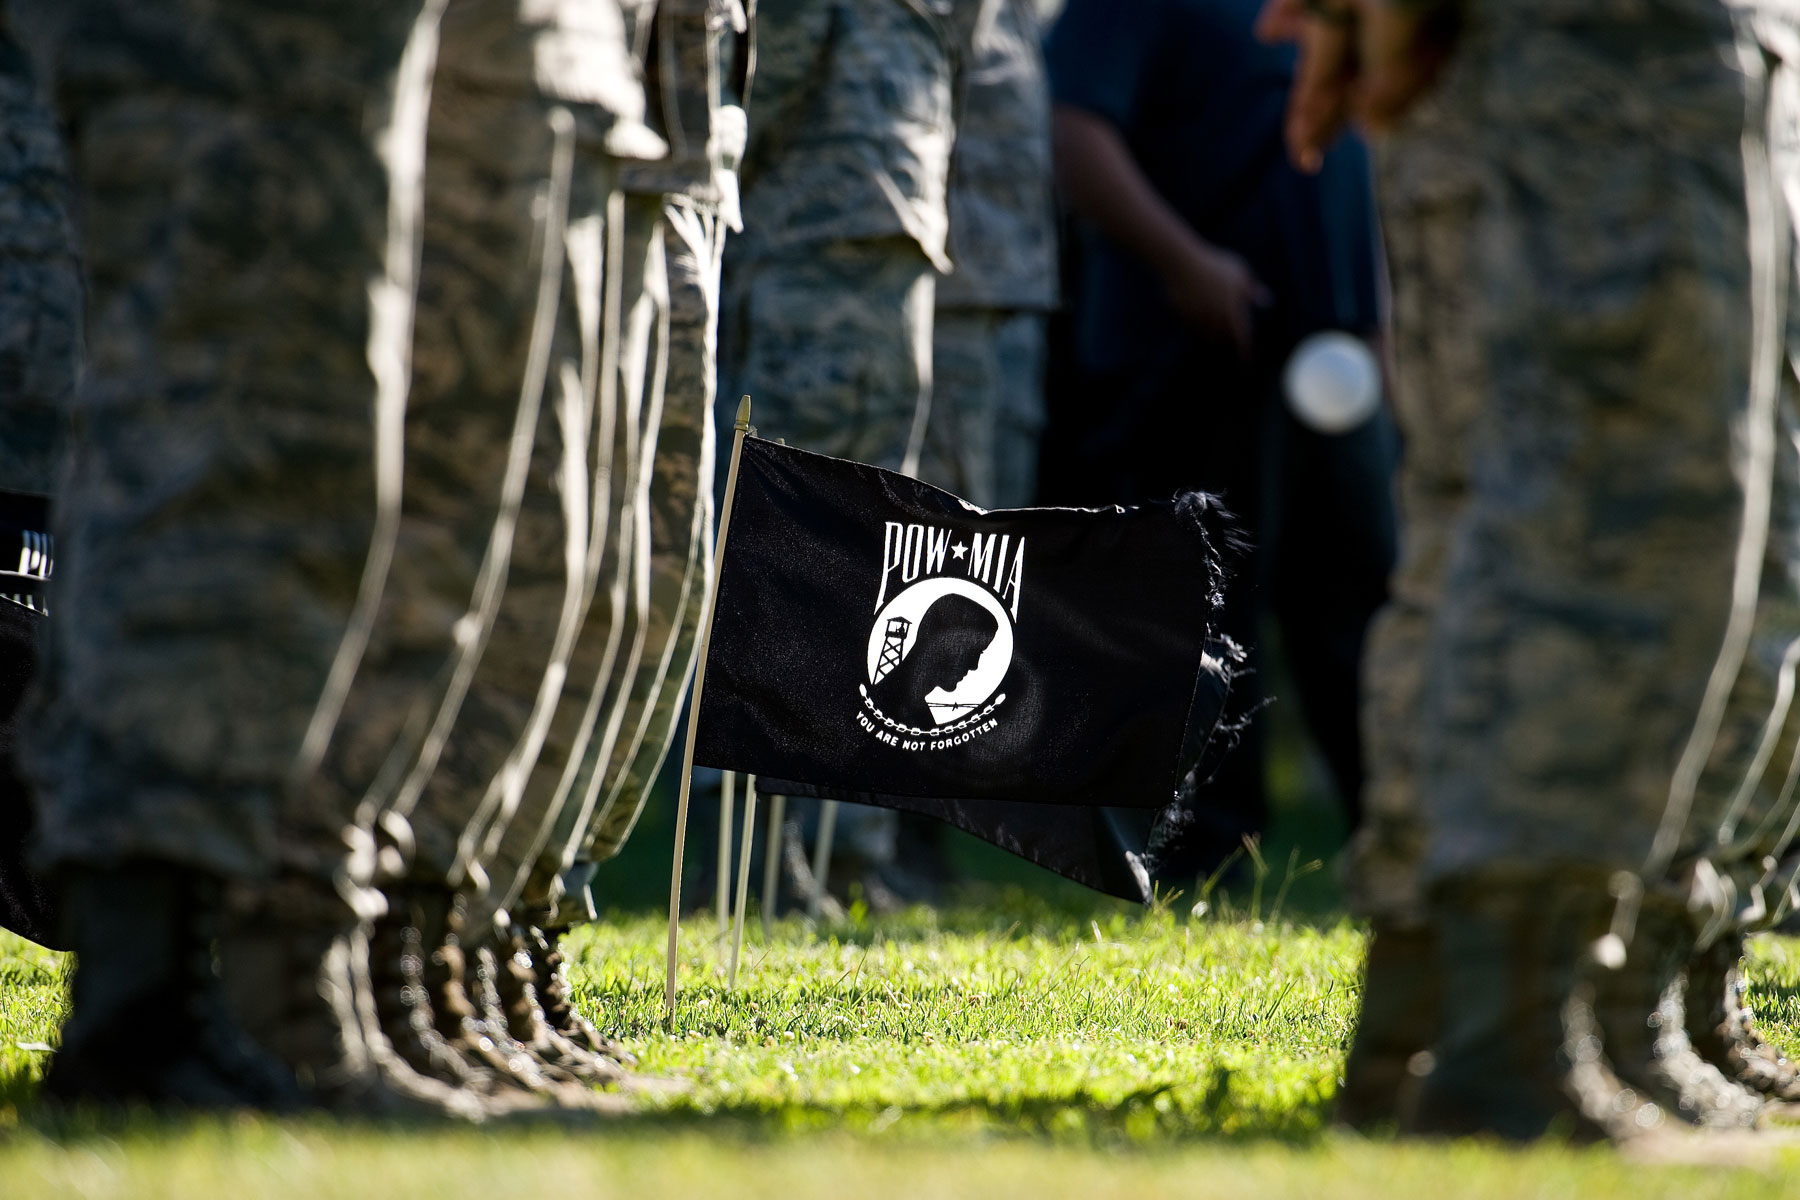 Twenty POW/MIA flags wave in a steady breeze during a retreat ceremony commemorating National POW/MIA Recognition Day Sept. 16, 2016, on Dover Air Force Base, Del. (U.S. Air Force photo by Roland Balik)